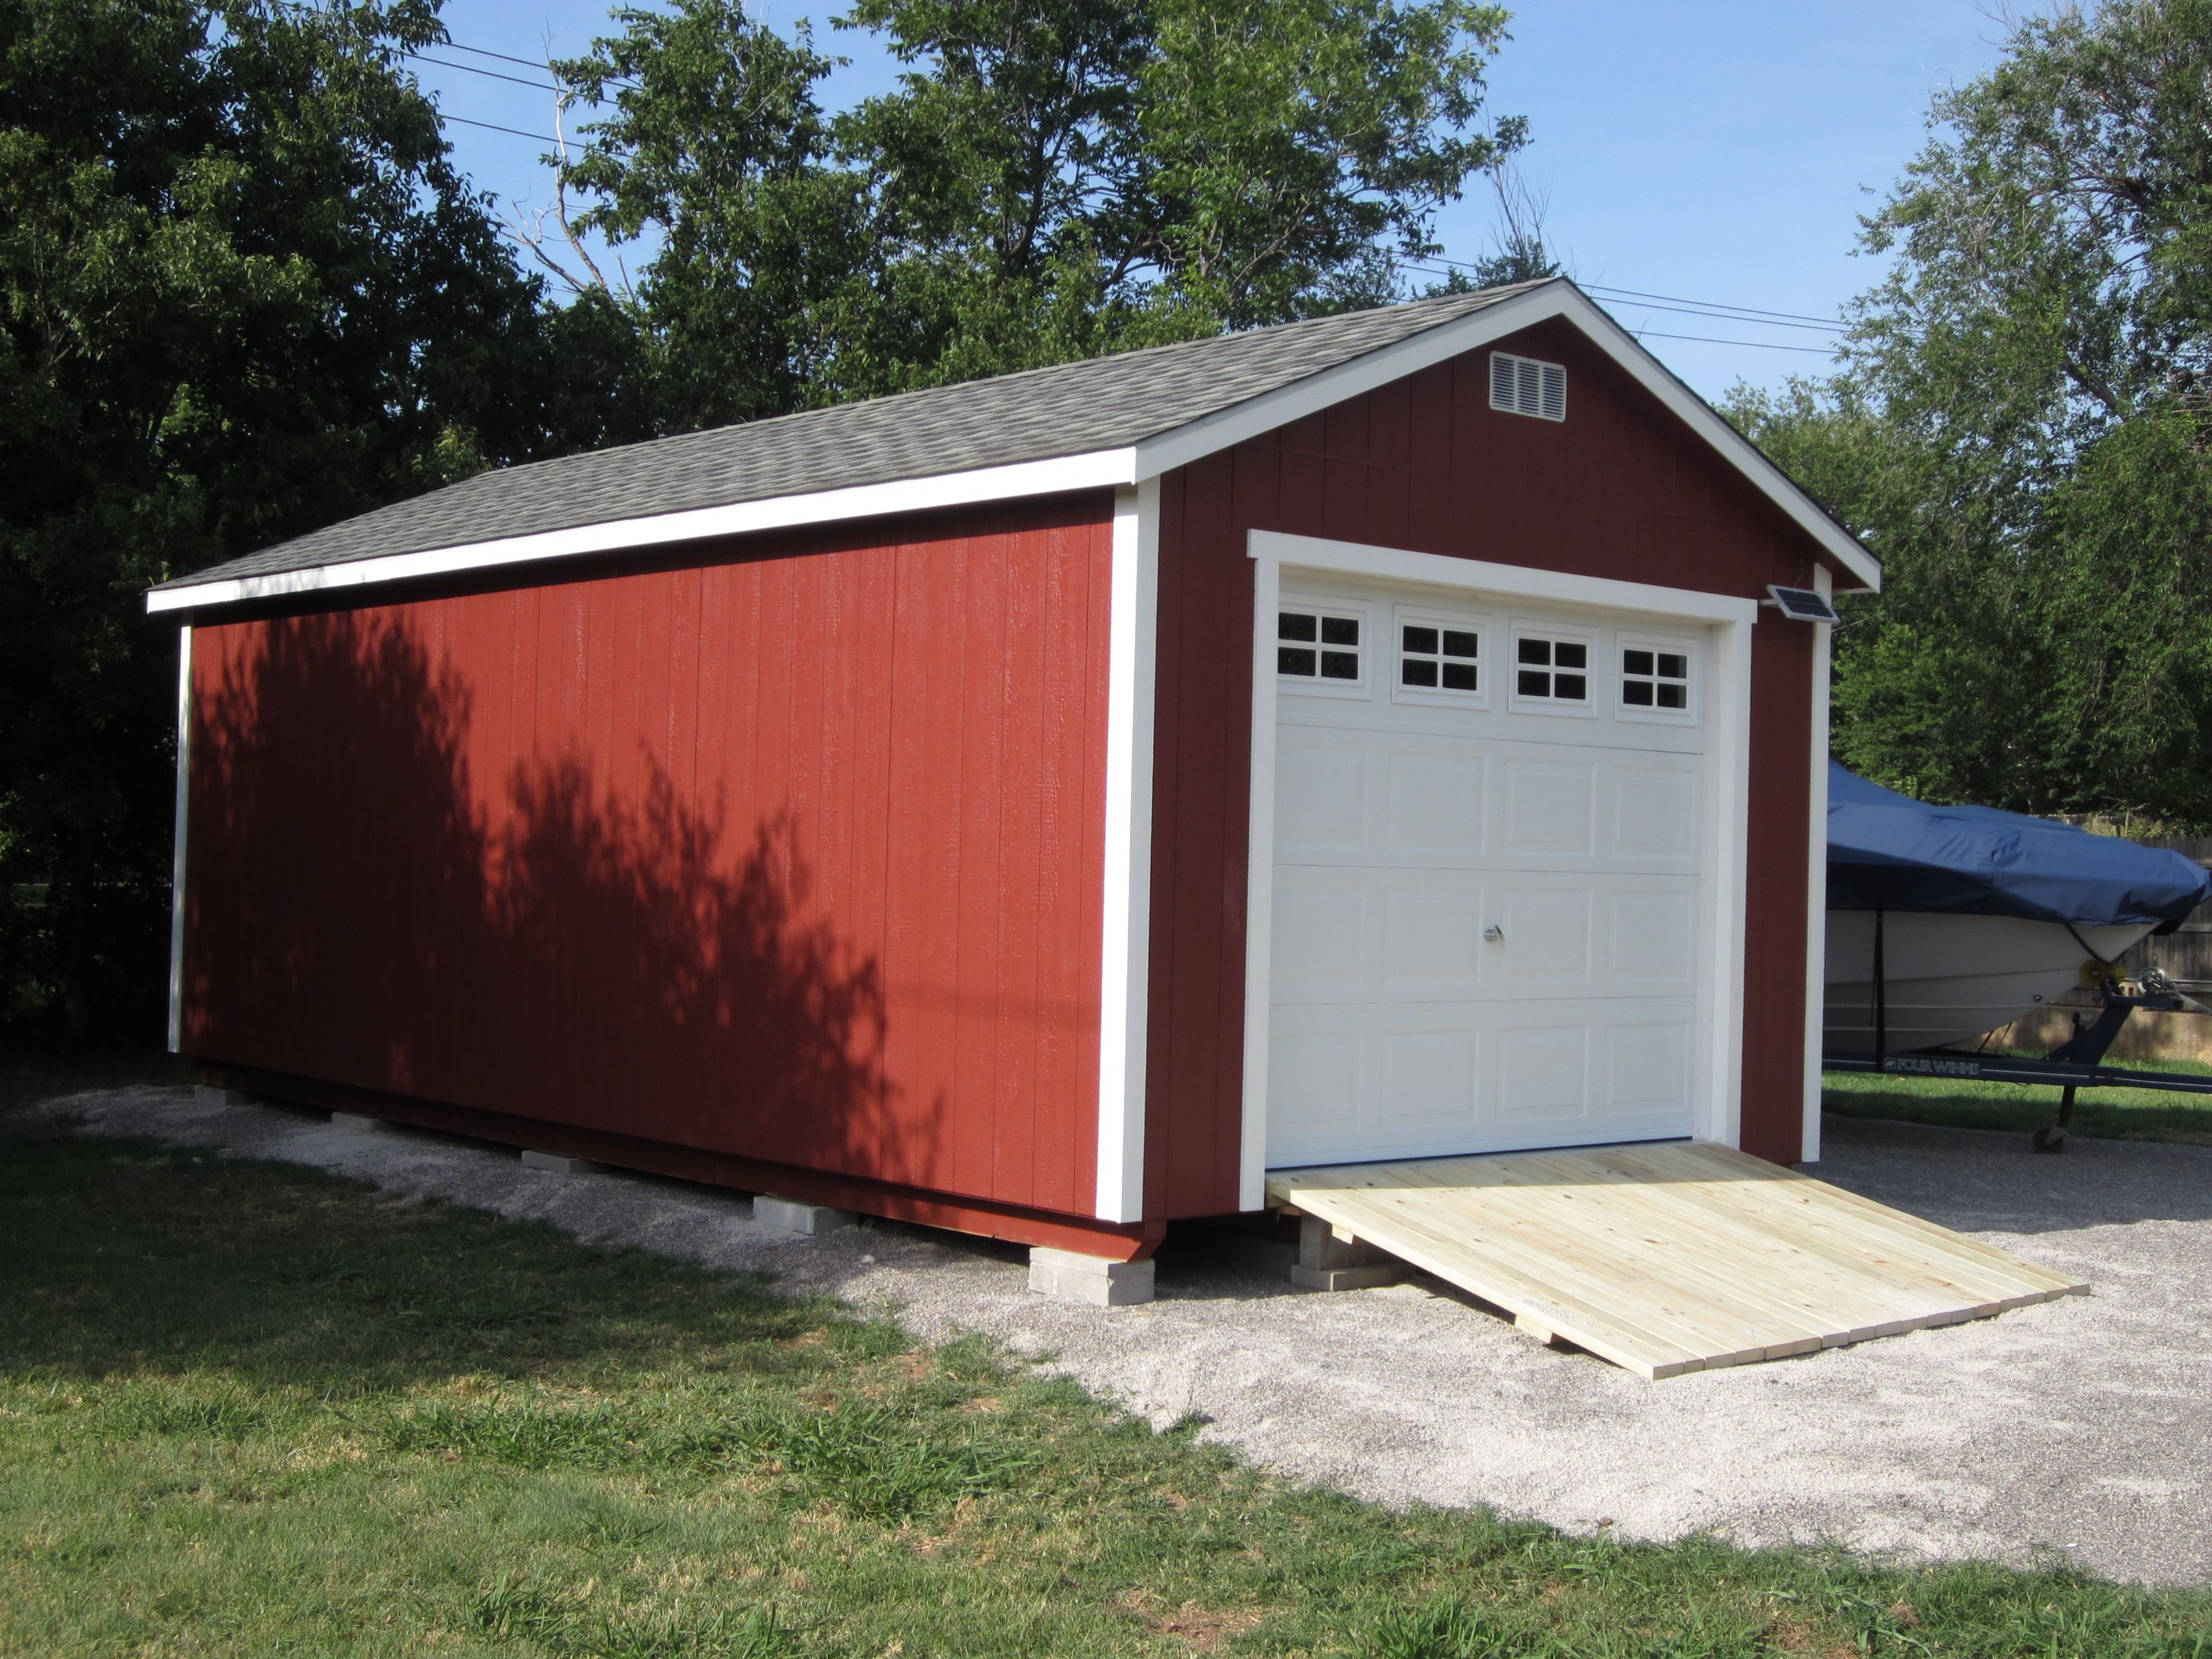 Portable metal garages, often made of steel, are a good